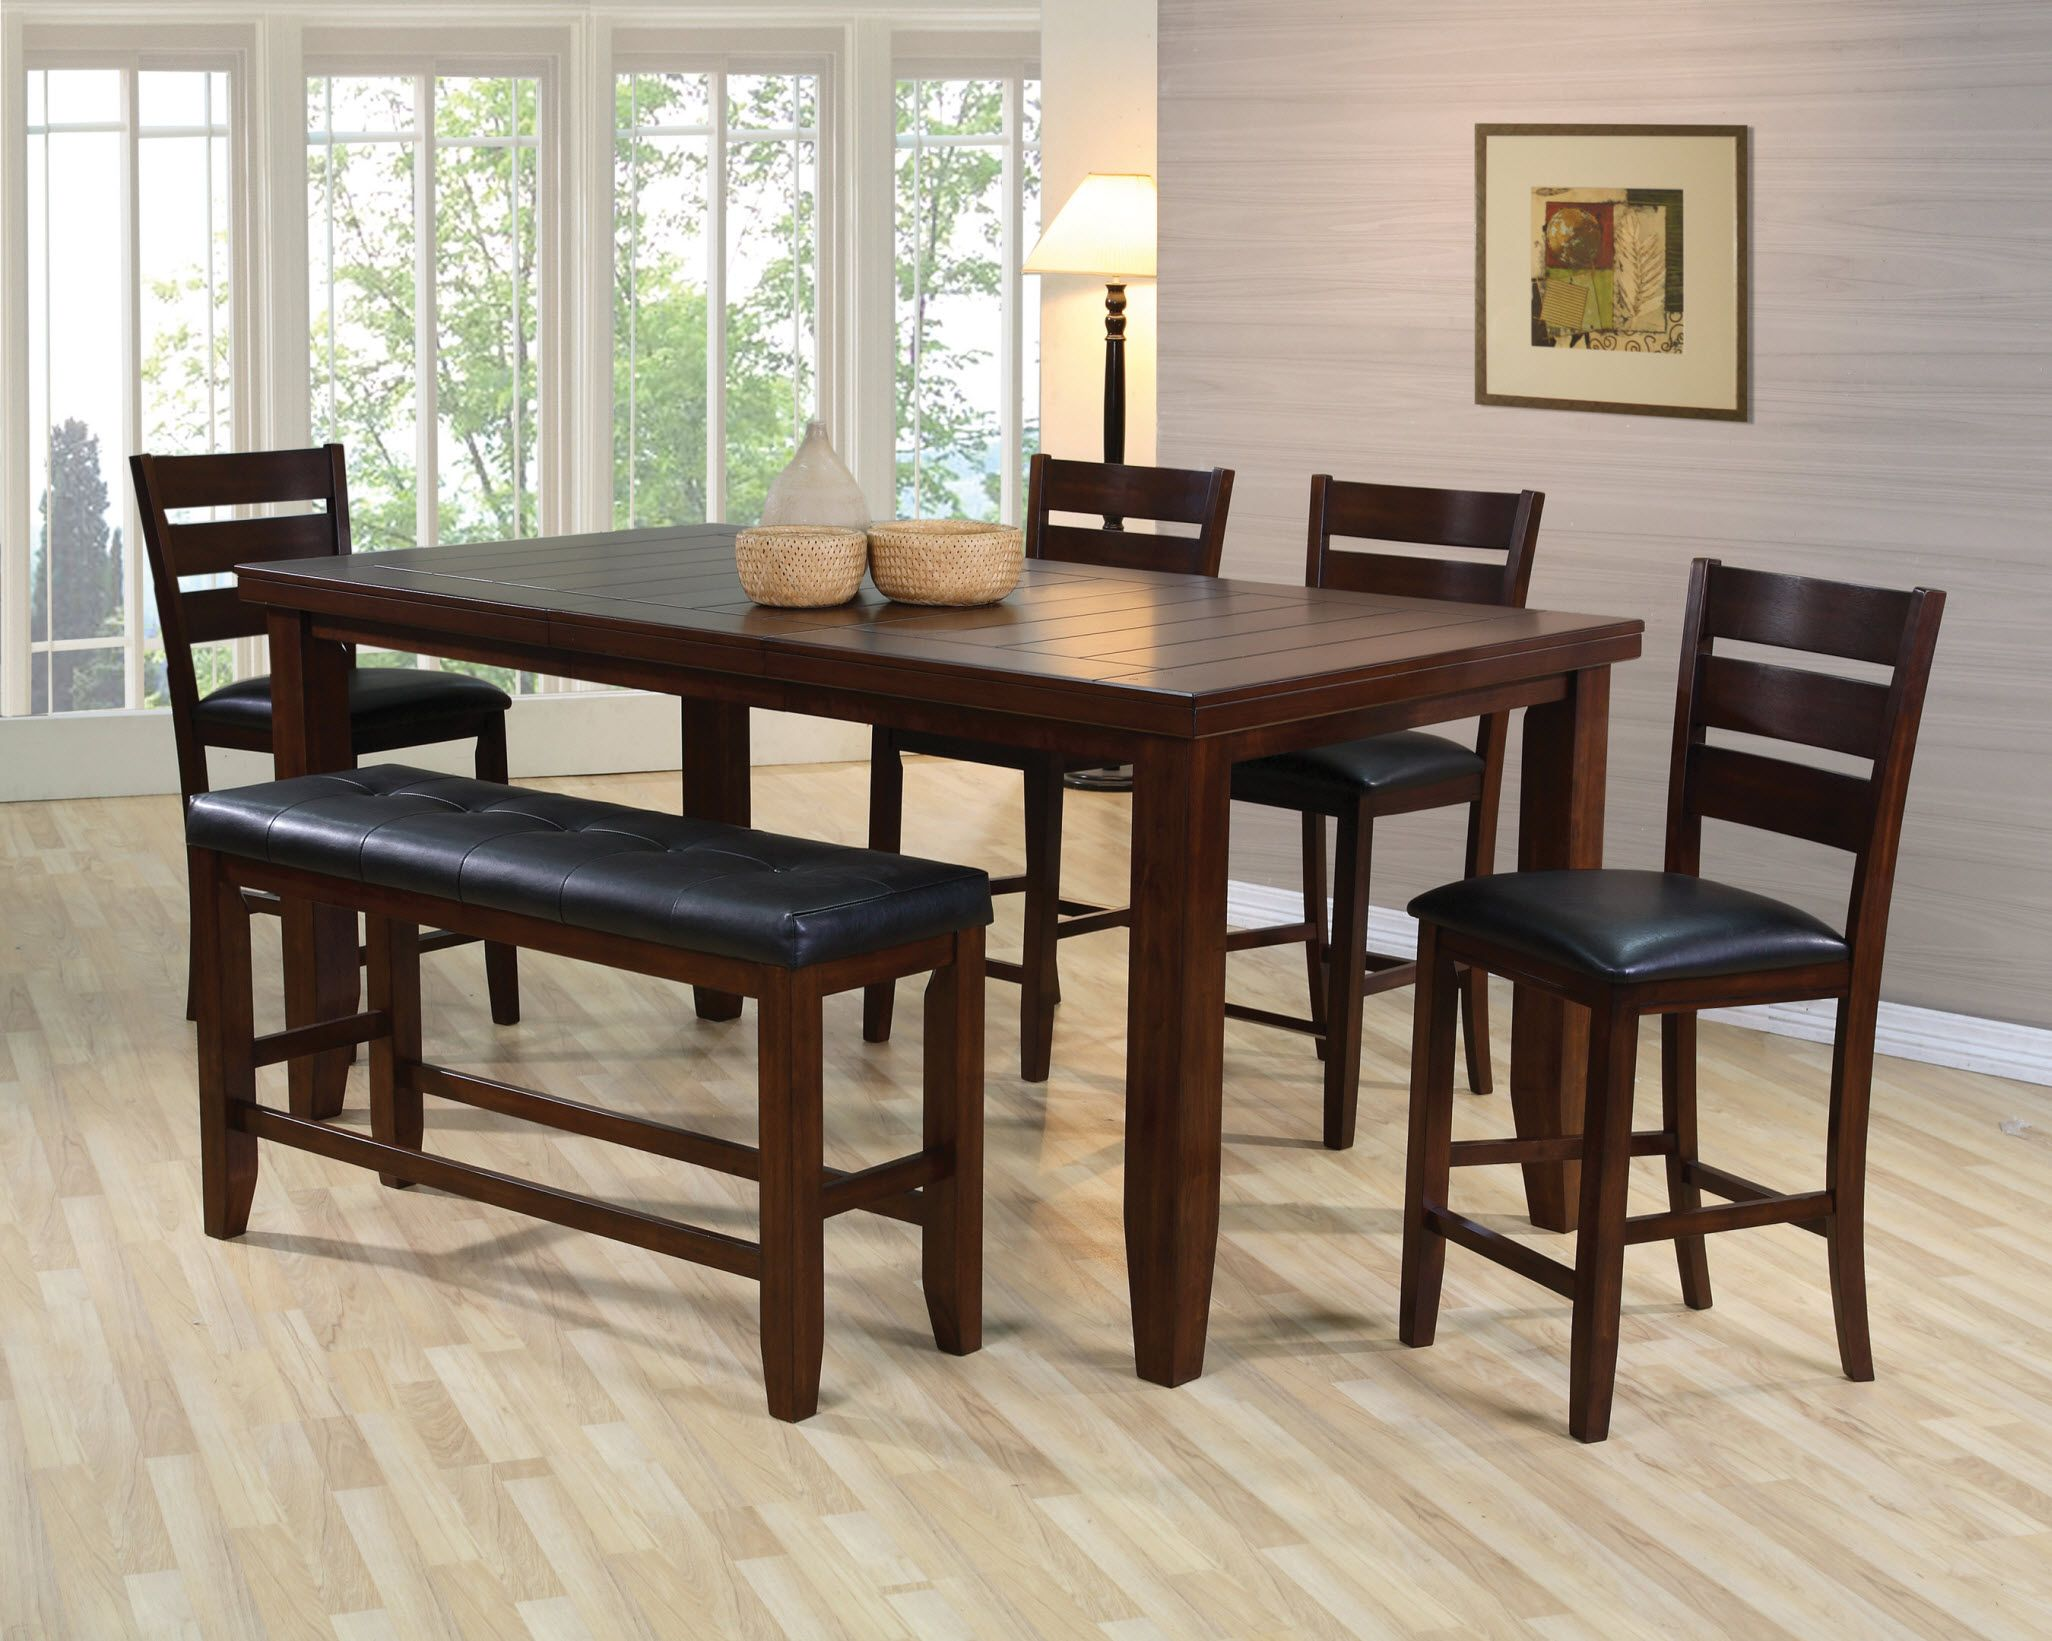 Surprising Unique Espresso Counter High Dining Table W 4 Chairs And Pabps2019 Chair Design Images Pabps2019Com